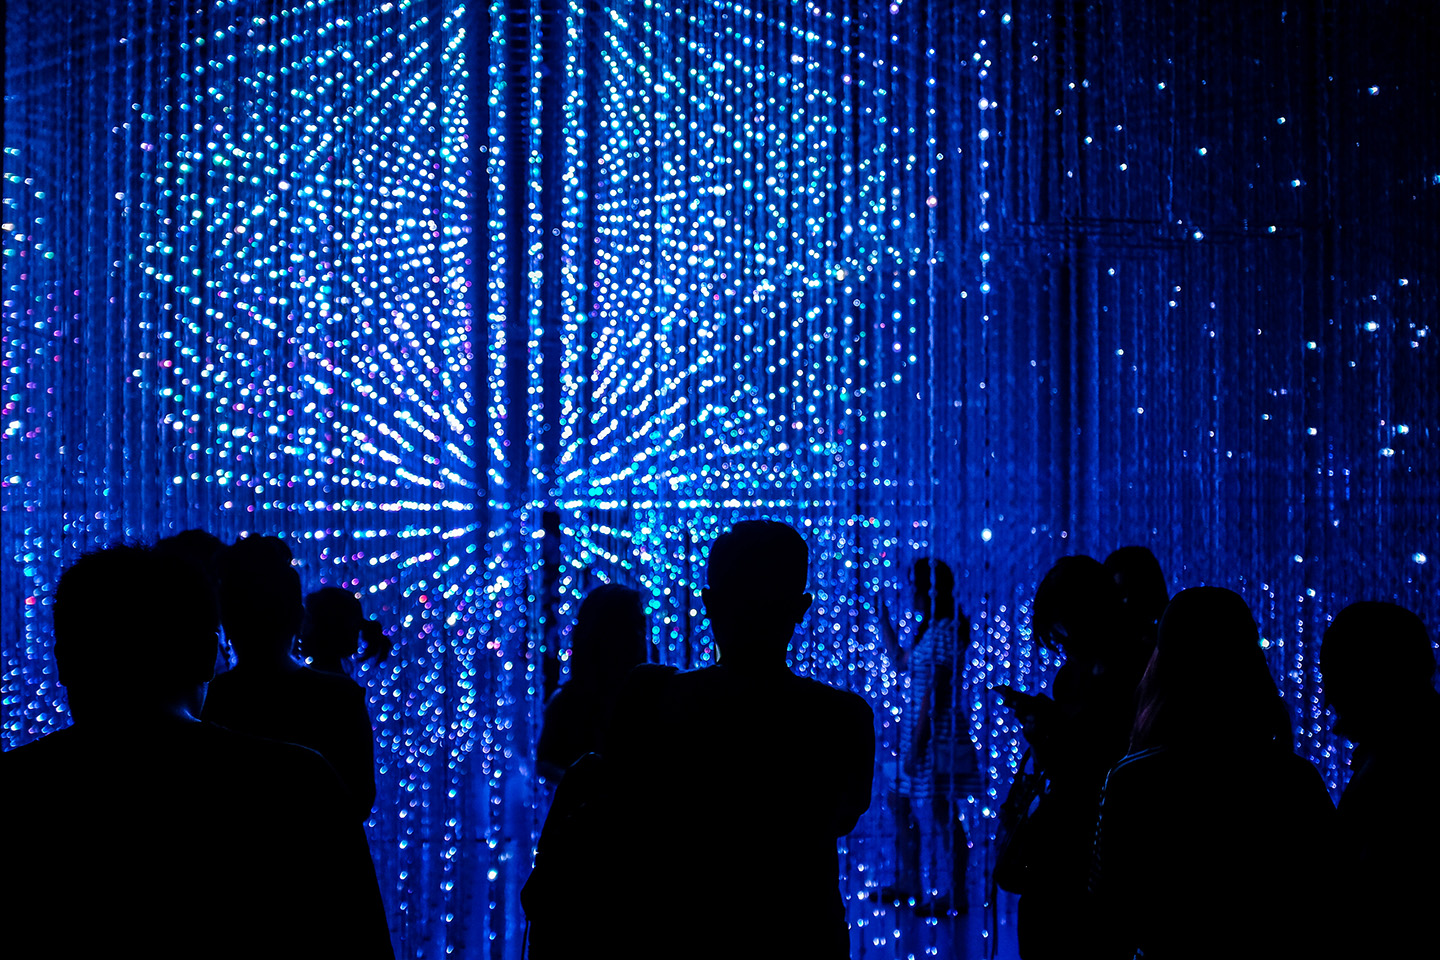 The Crystal Universe, an interactive installation by teamLab at the Future World exhibition, ArtScience Museum in Singapore. (Stefan Irvine/LightRocket via Getty Images)